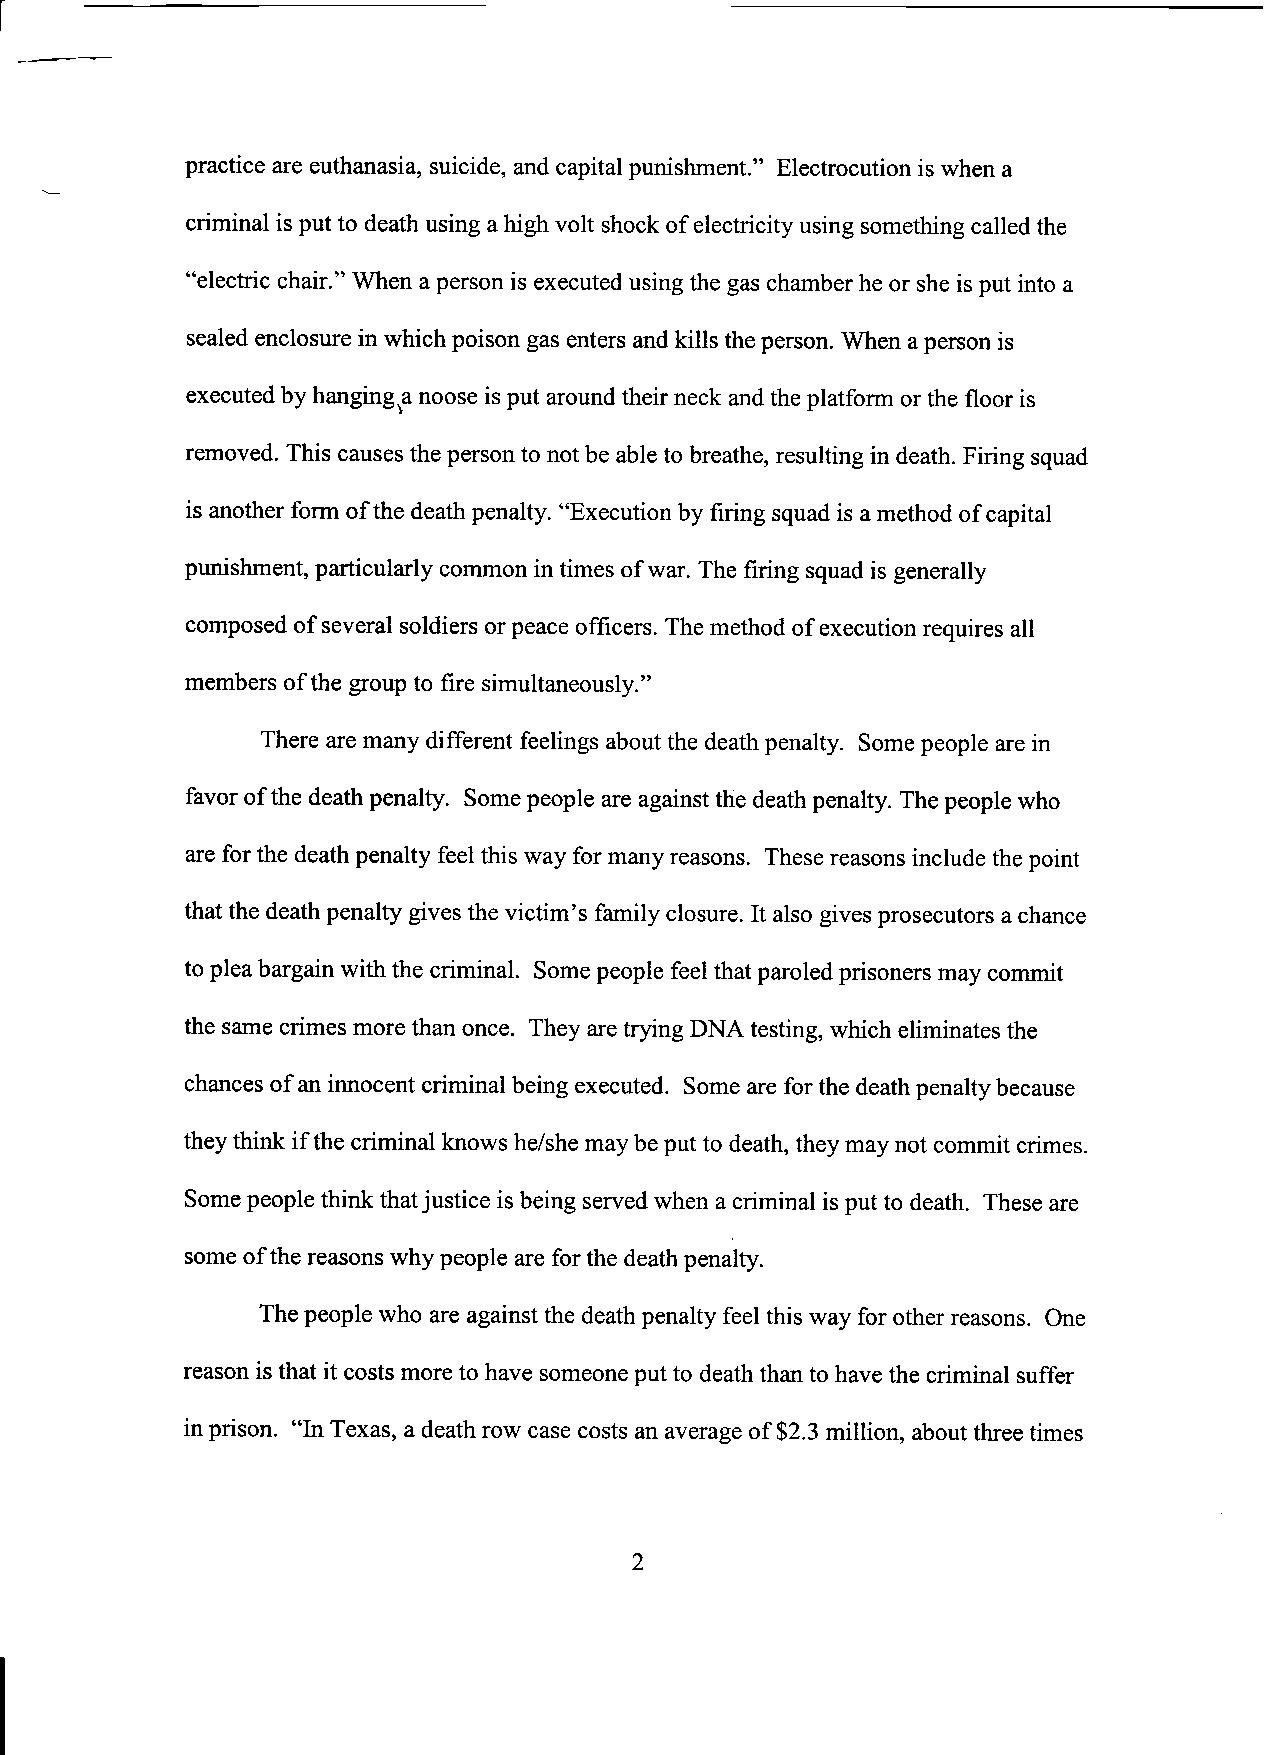 008 Argumentative Essay On Death Penalty Pg Unbelievable Ideas Persuasive About In The Philippines Pro Full